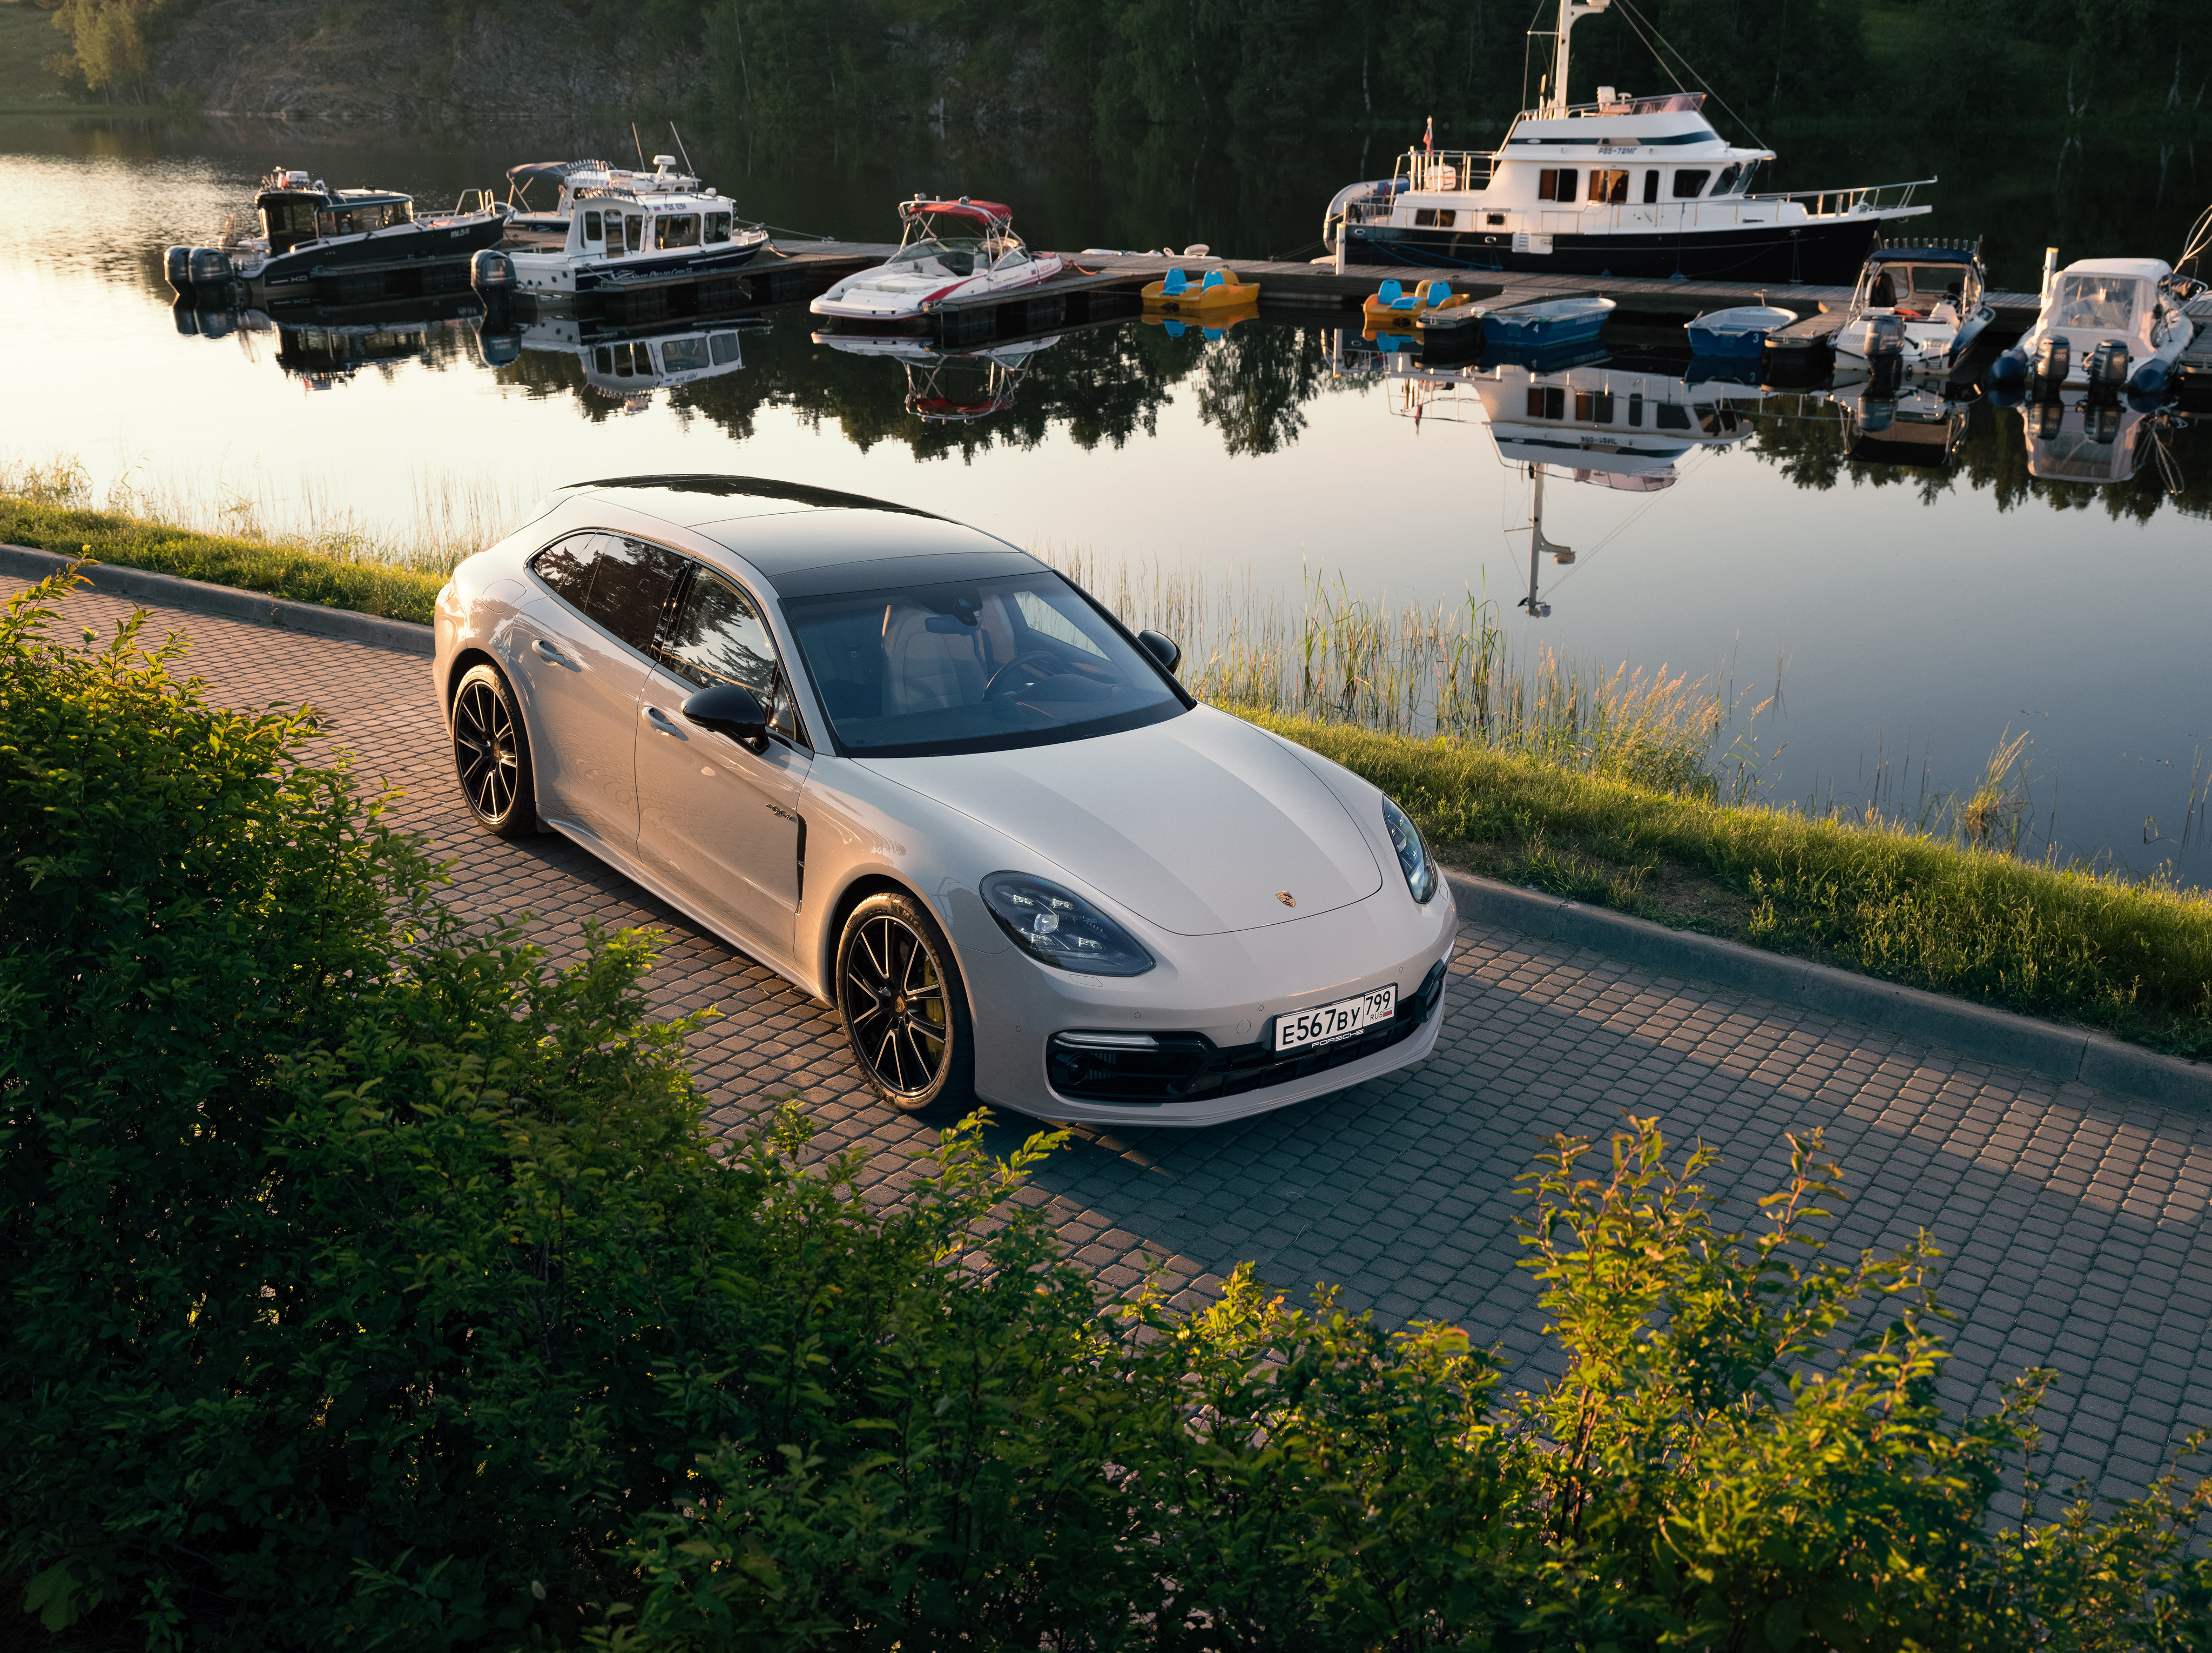 Porsche Panamera Turbo S E Hybrid Sport Turismo Hd Cars 4k Wallpapers Images Backgrounds Photos And Pictures